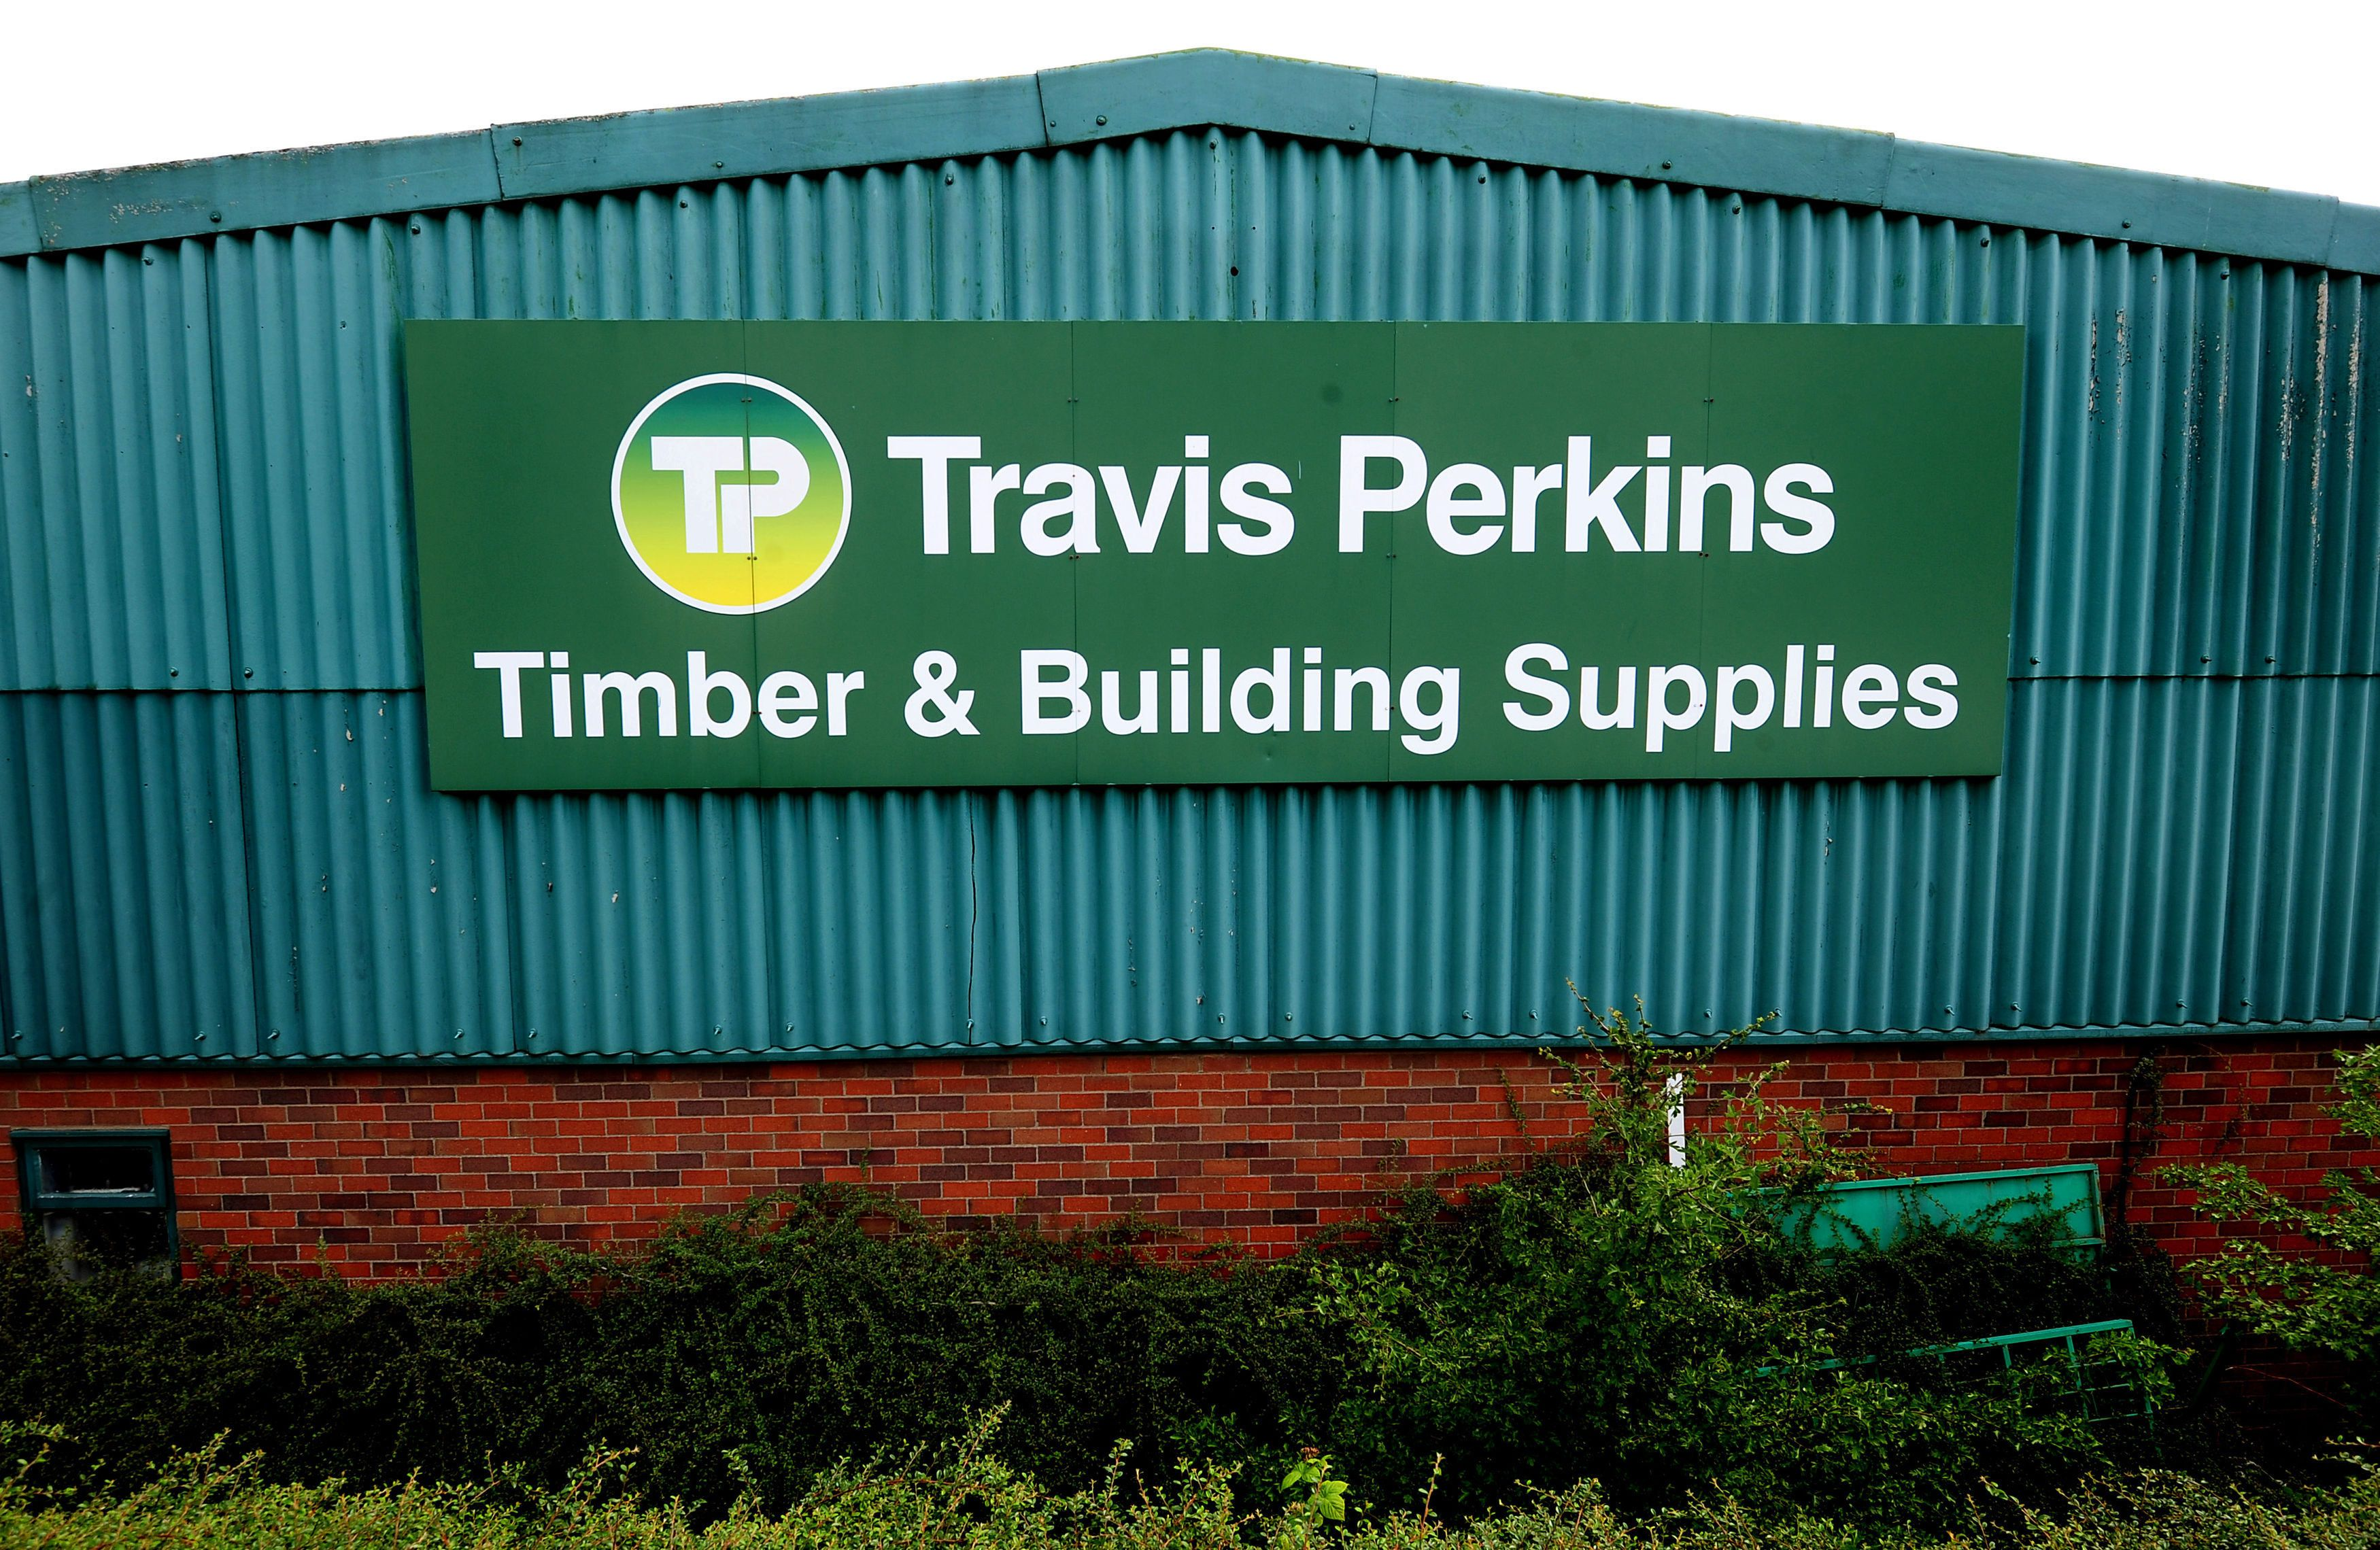 Travis Perkins has revealed plans to close more than 30 branches in a move impacting 600 jobs across...